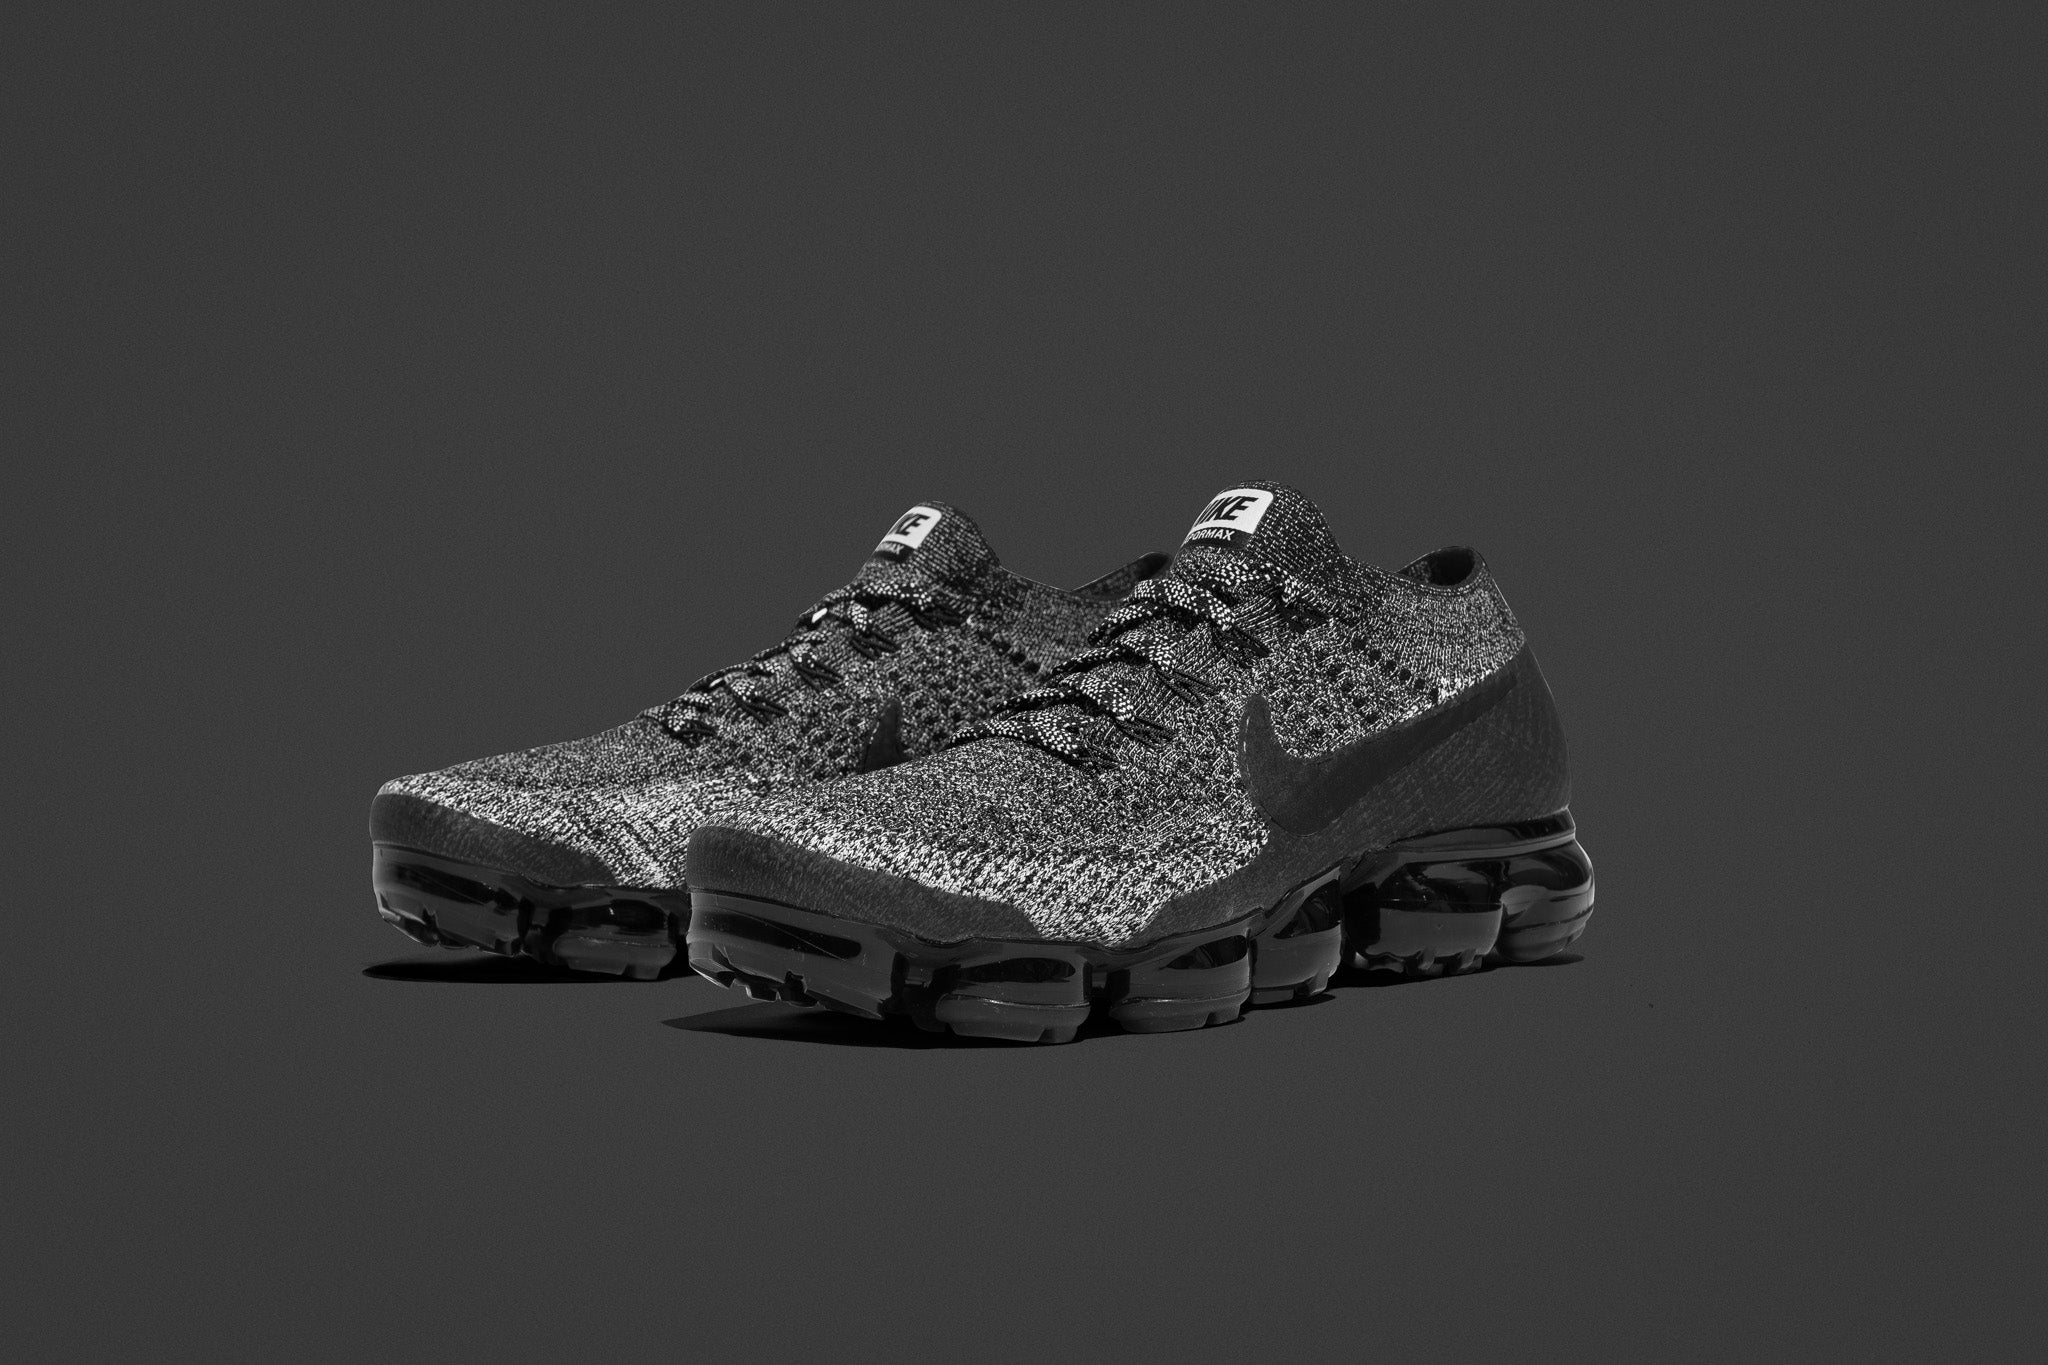 de5ab8e1d3 Nike Vapormax Flyknit Cookies And Cream biological-crop-protection.co.uk